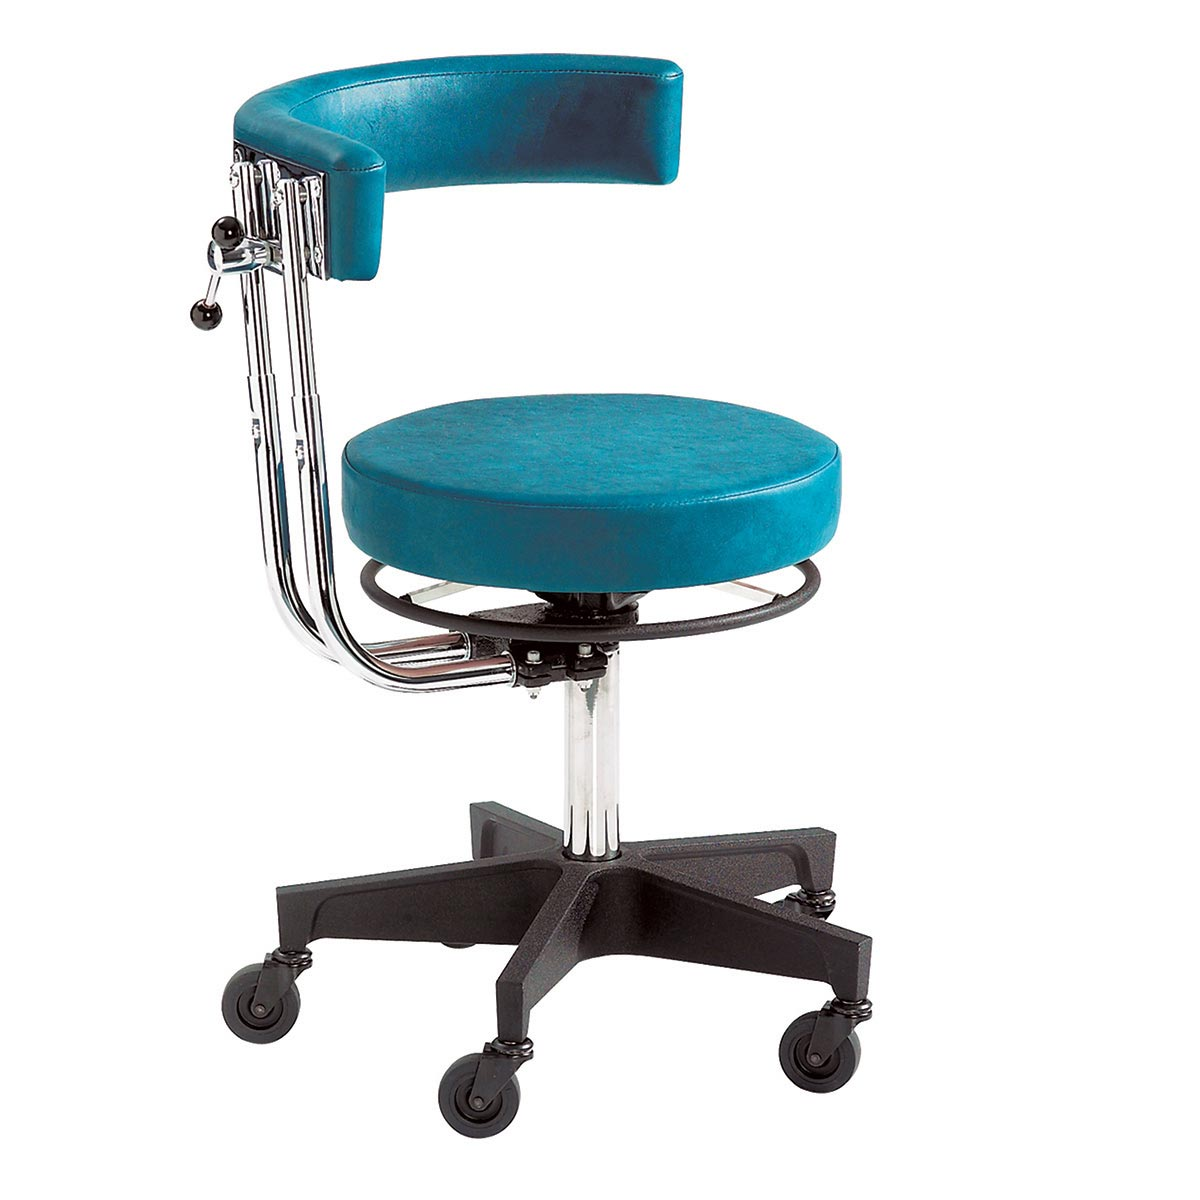 All-Day Ergonomic Comfort Meets Stability in the 5356